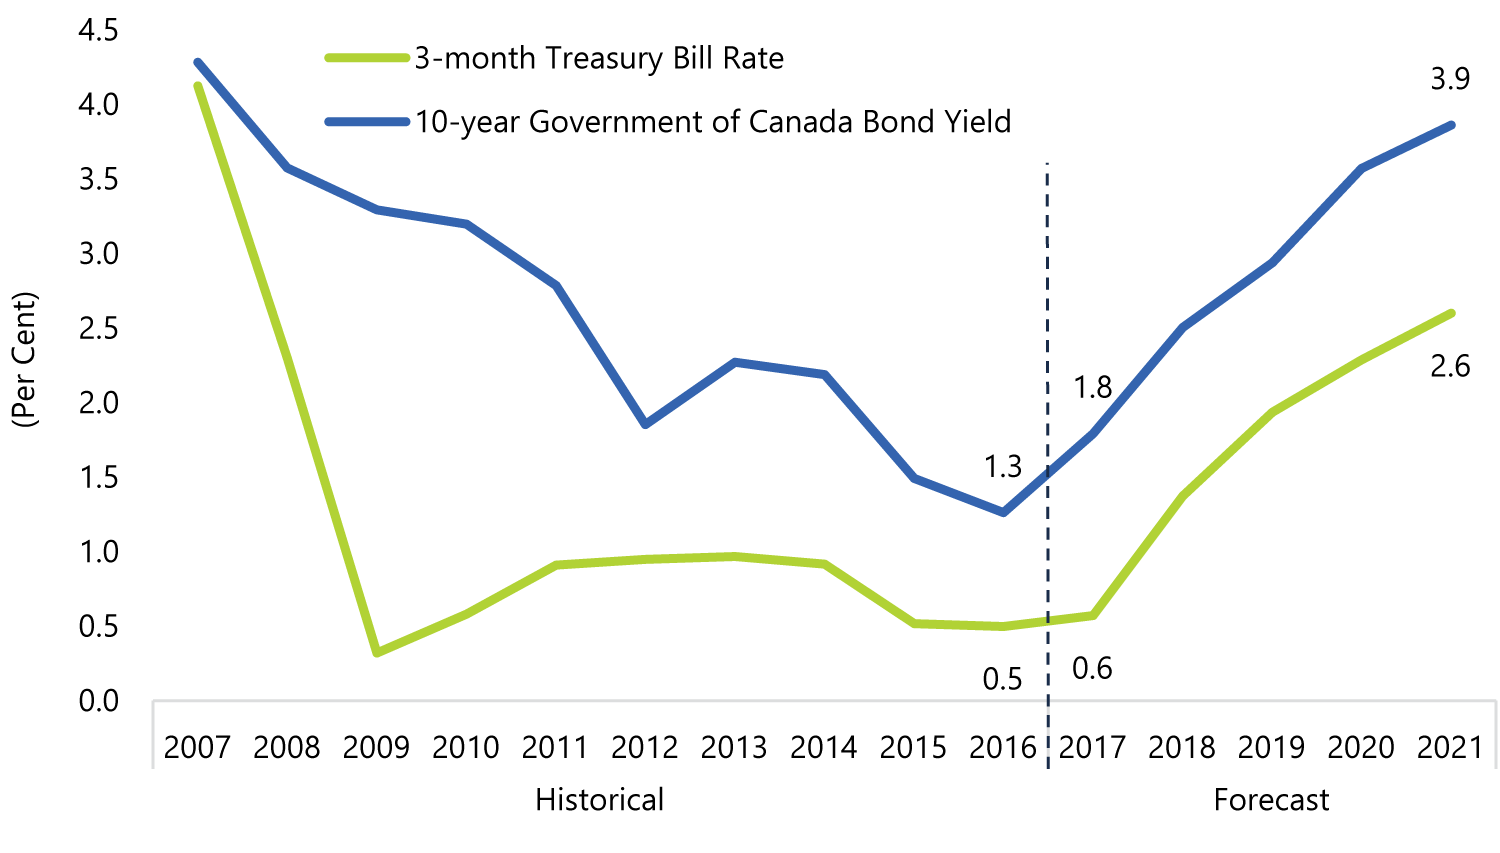 Canadian Interest Rates to Rise over the Forecast